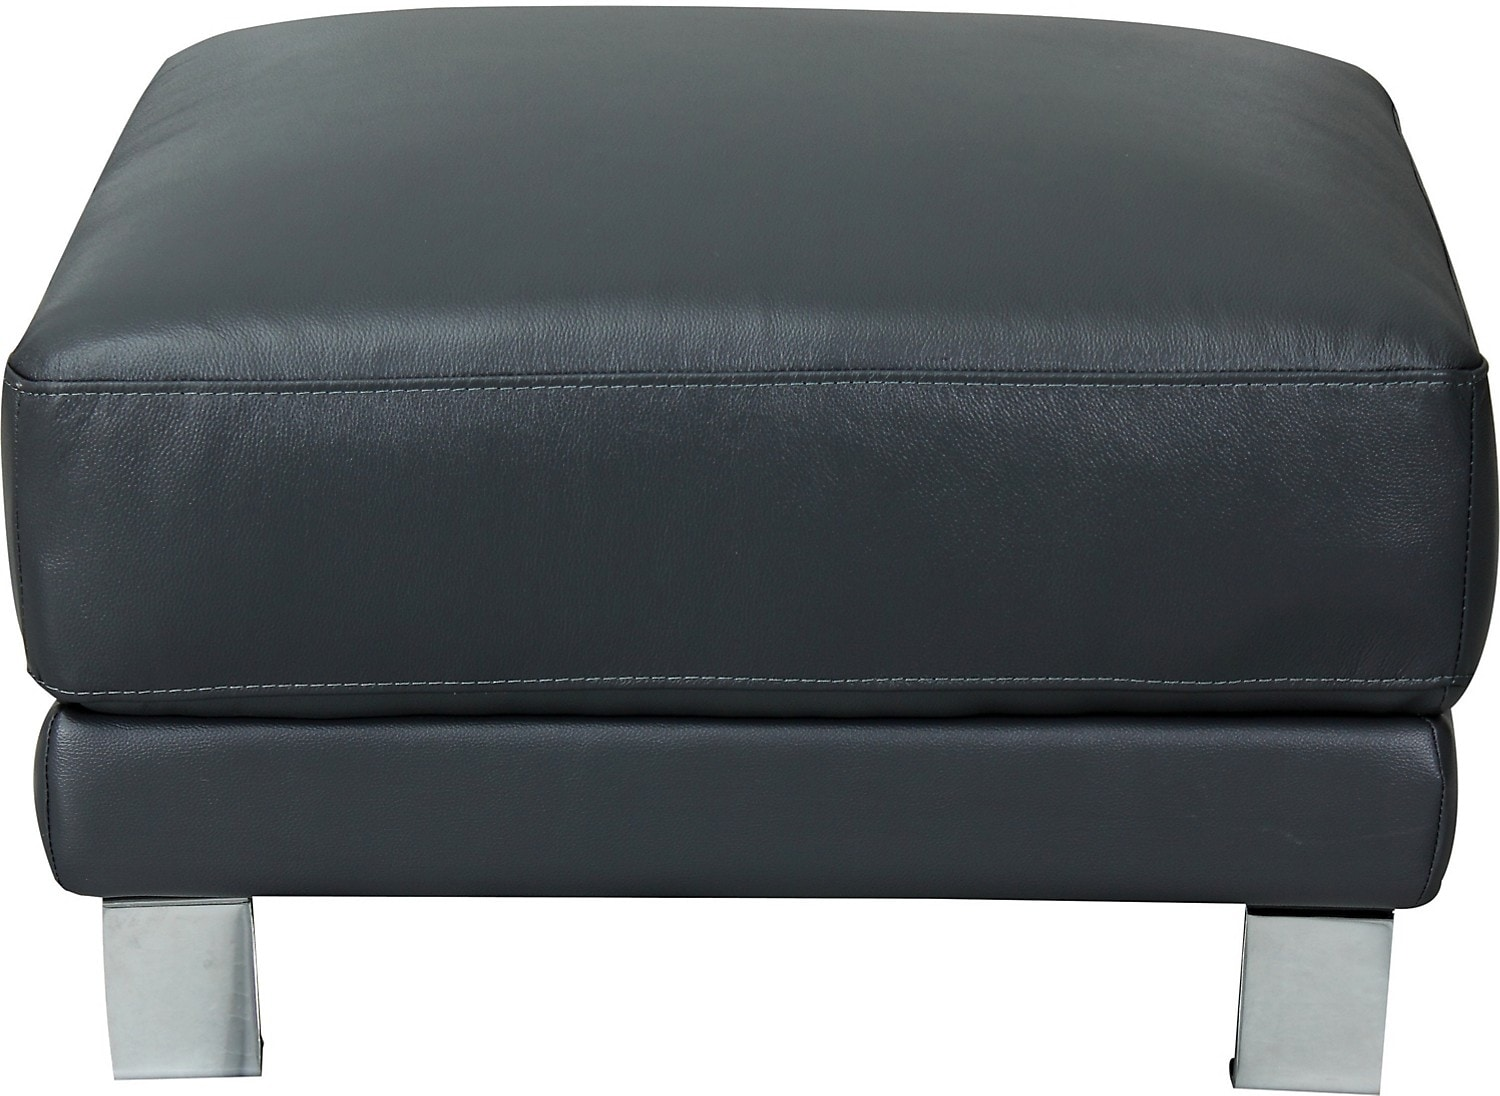 Nico Genuine Leather Ottoman - Grey